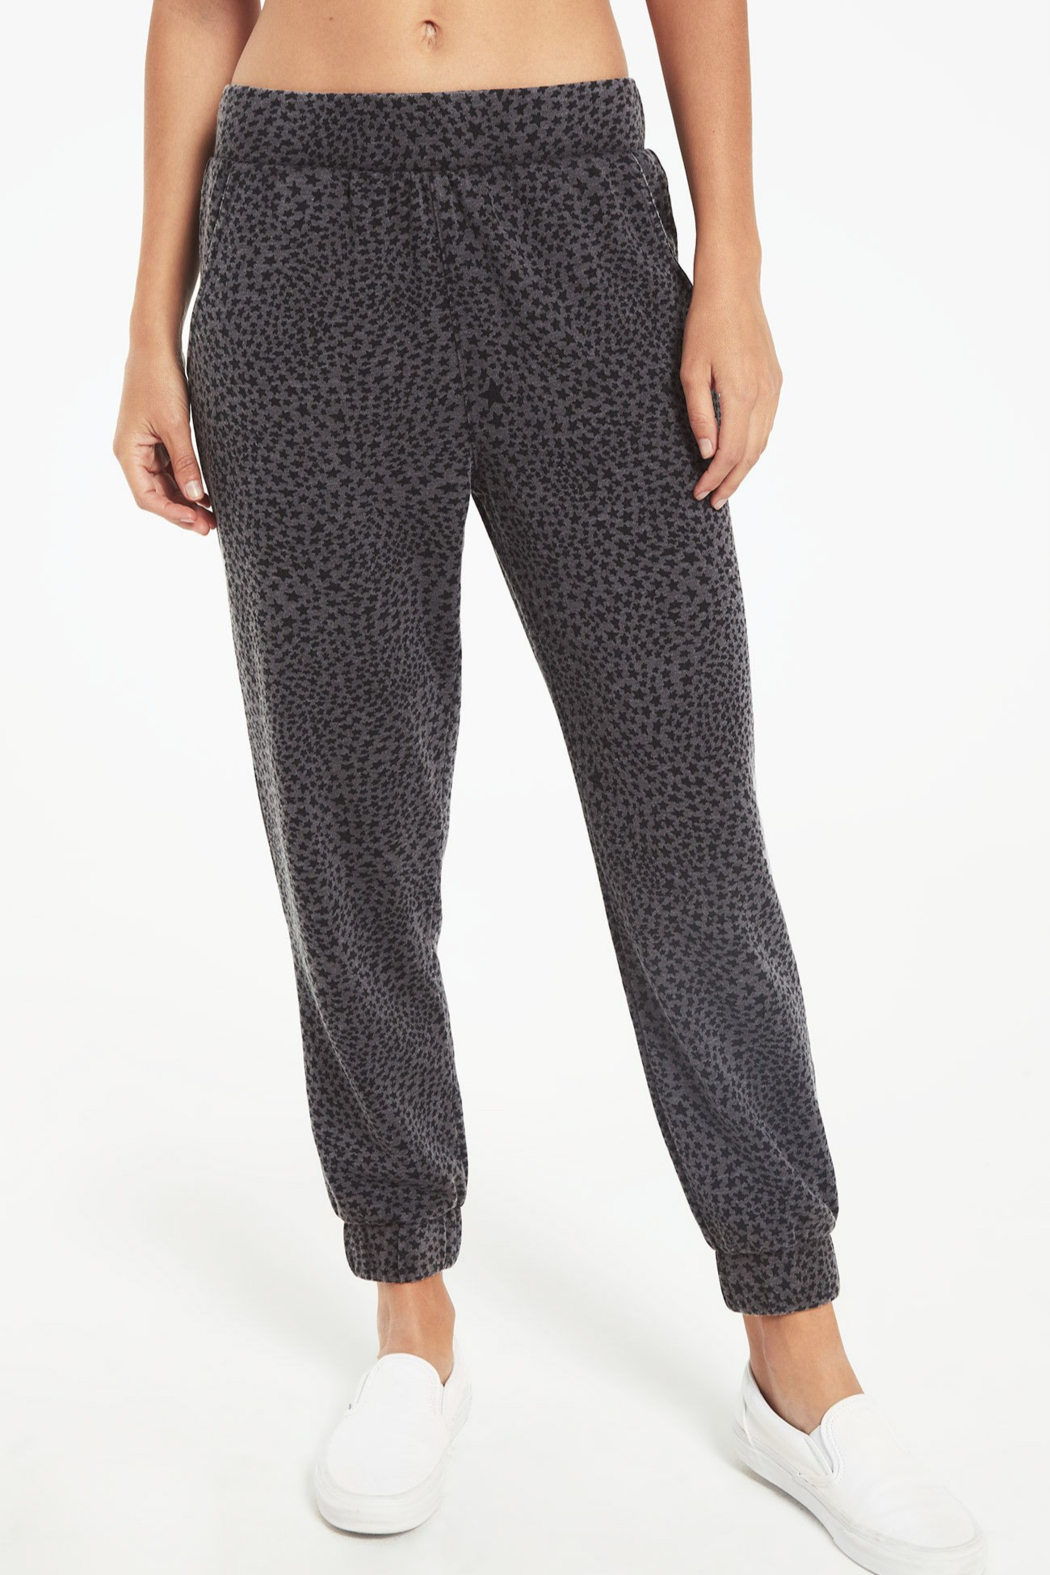 z supply Cadence Stardust Jogger - Front Cropped Image